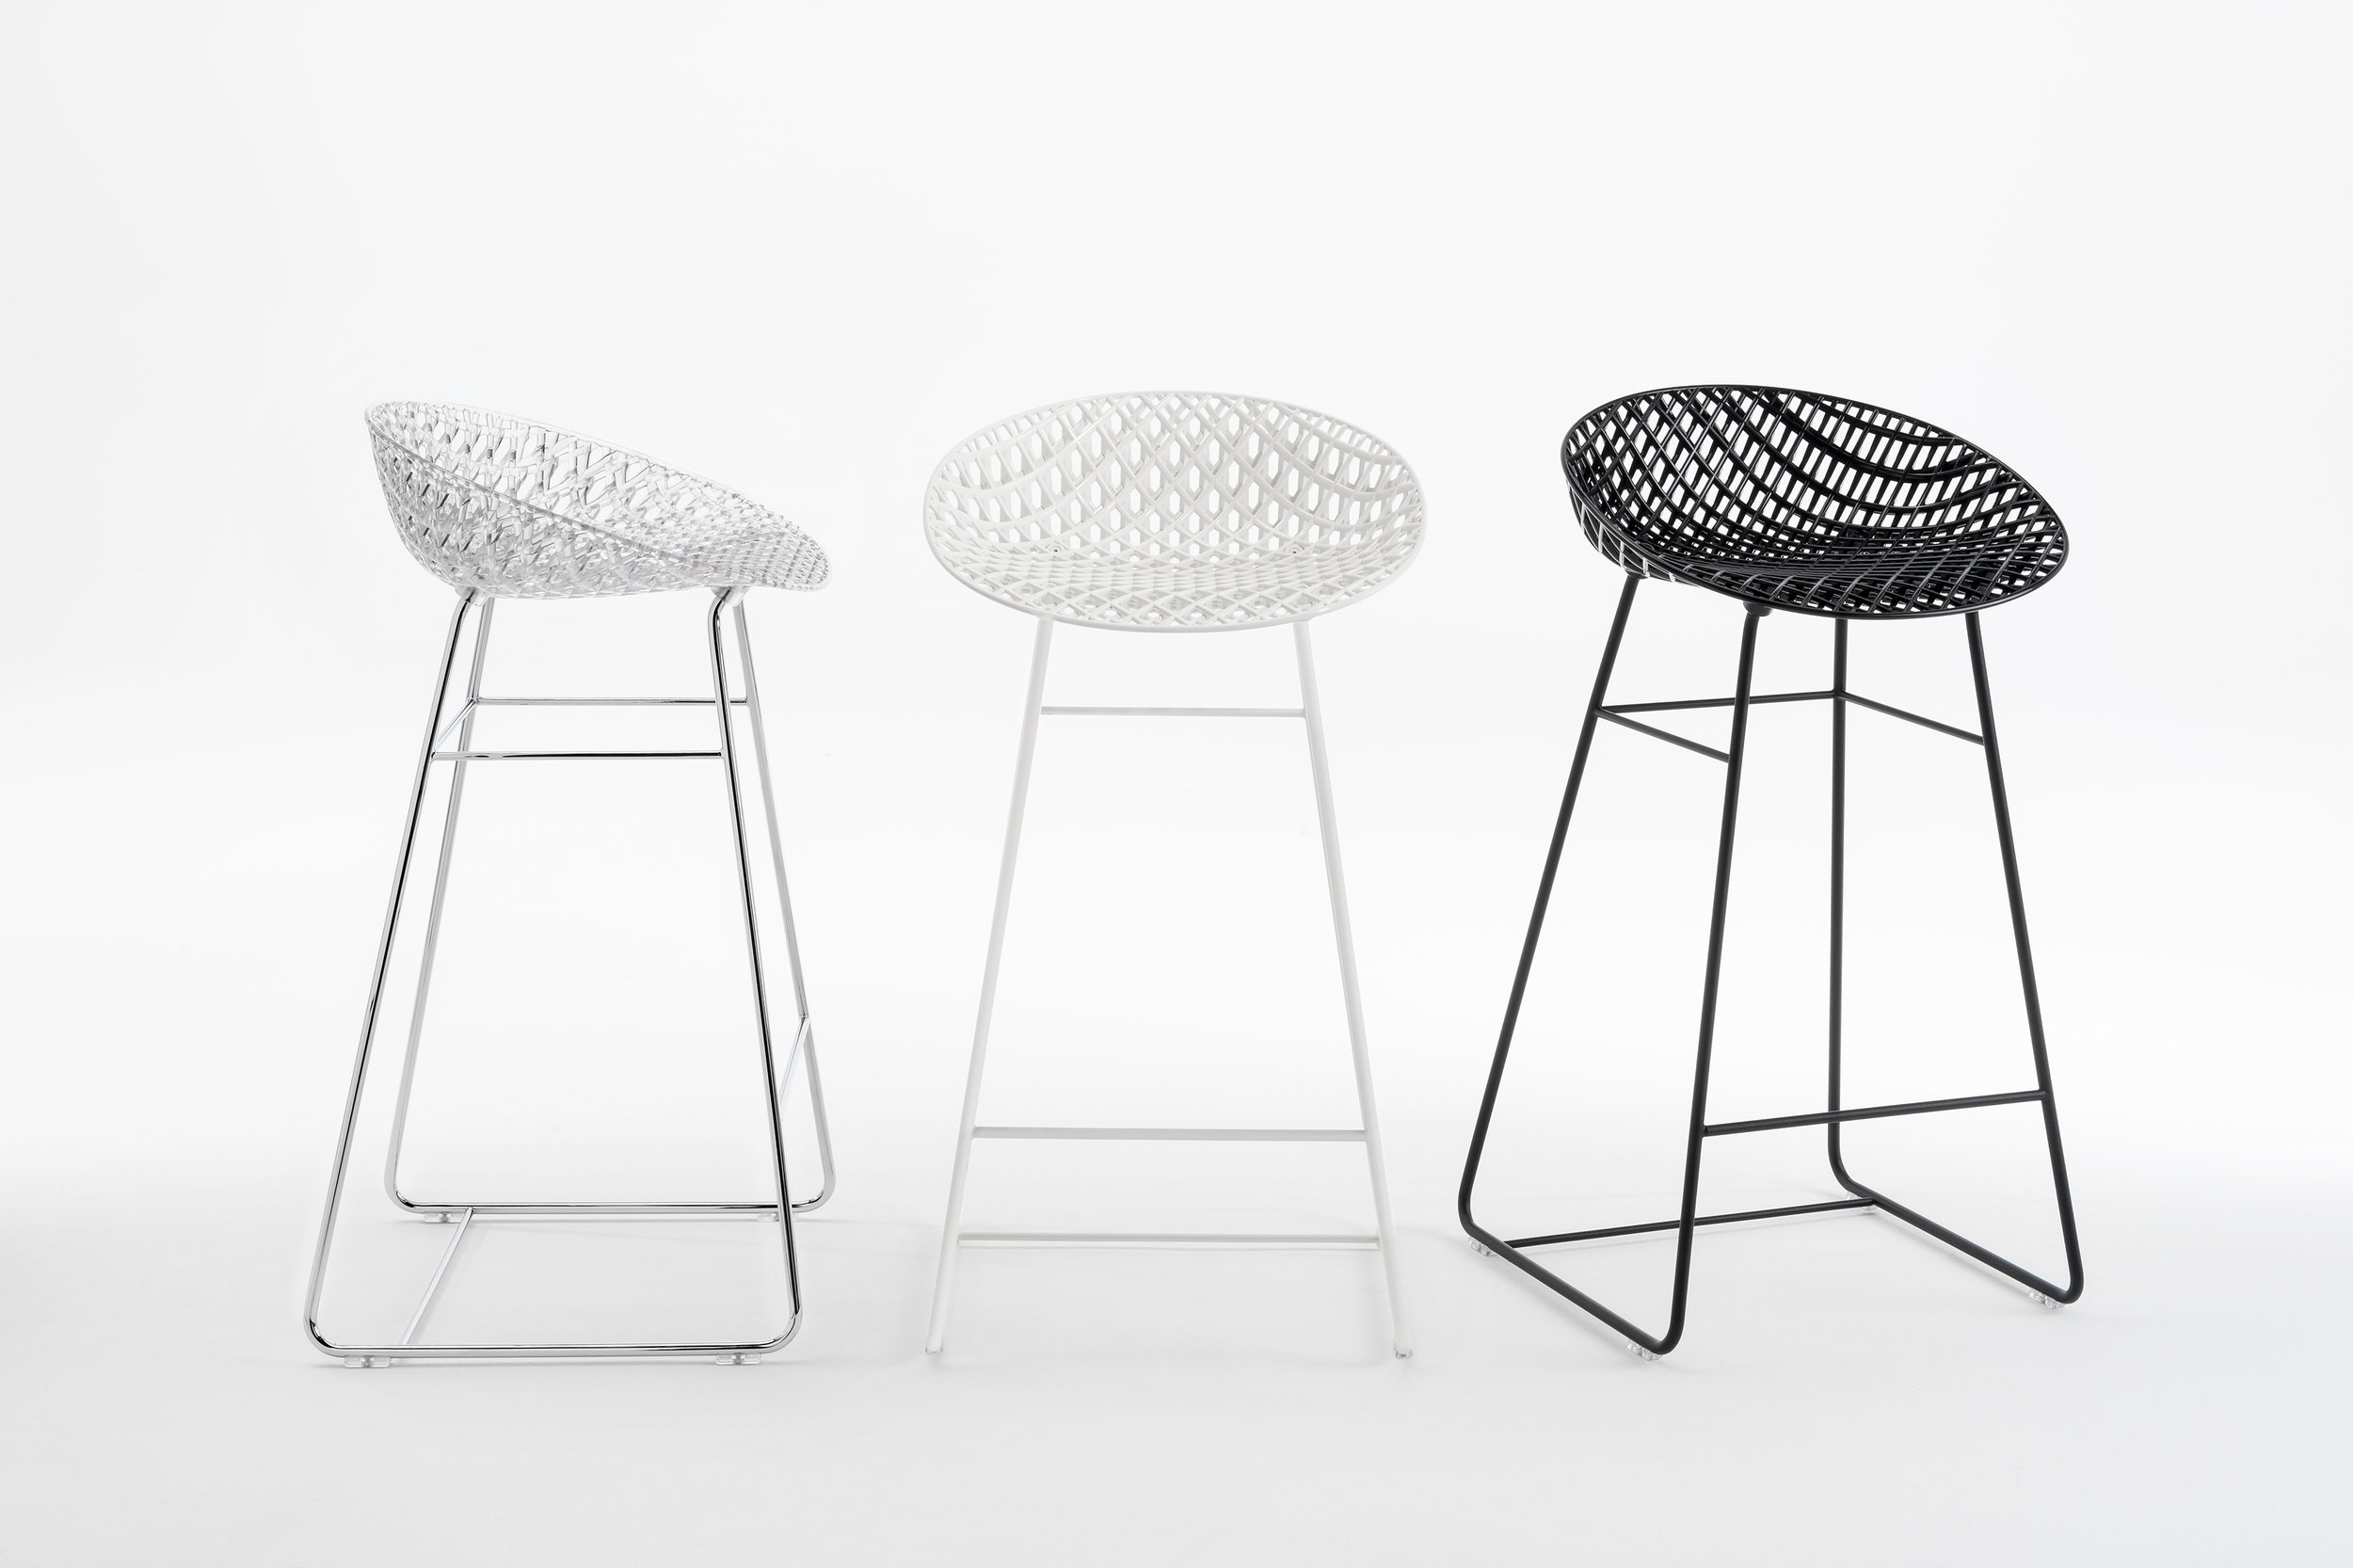 The new S/Matrik stool by Japanese designer  Tokujin Yoshioka  joins the family of chairs created by  Yoshioka  in 2017. Photo © Kartell.